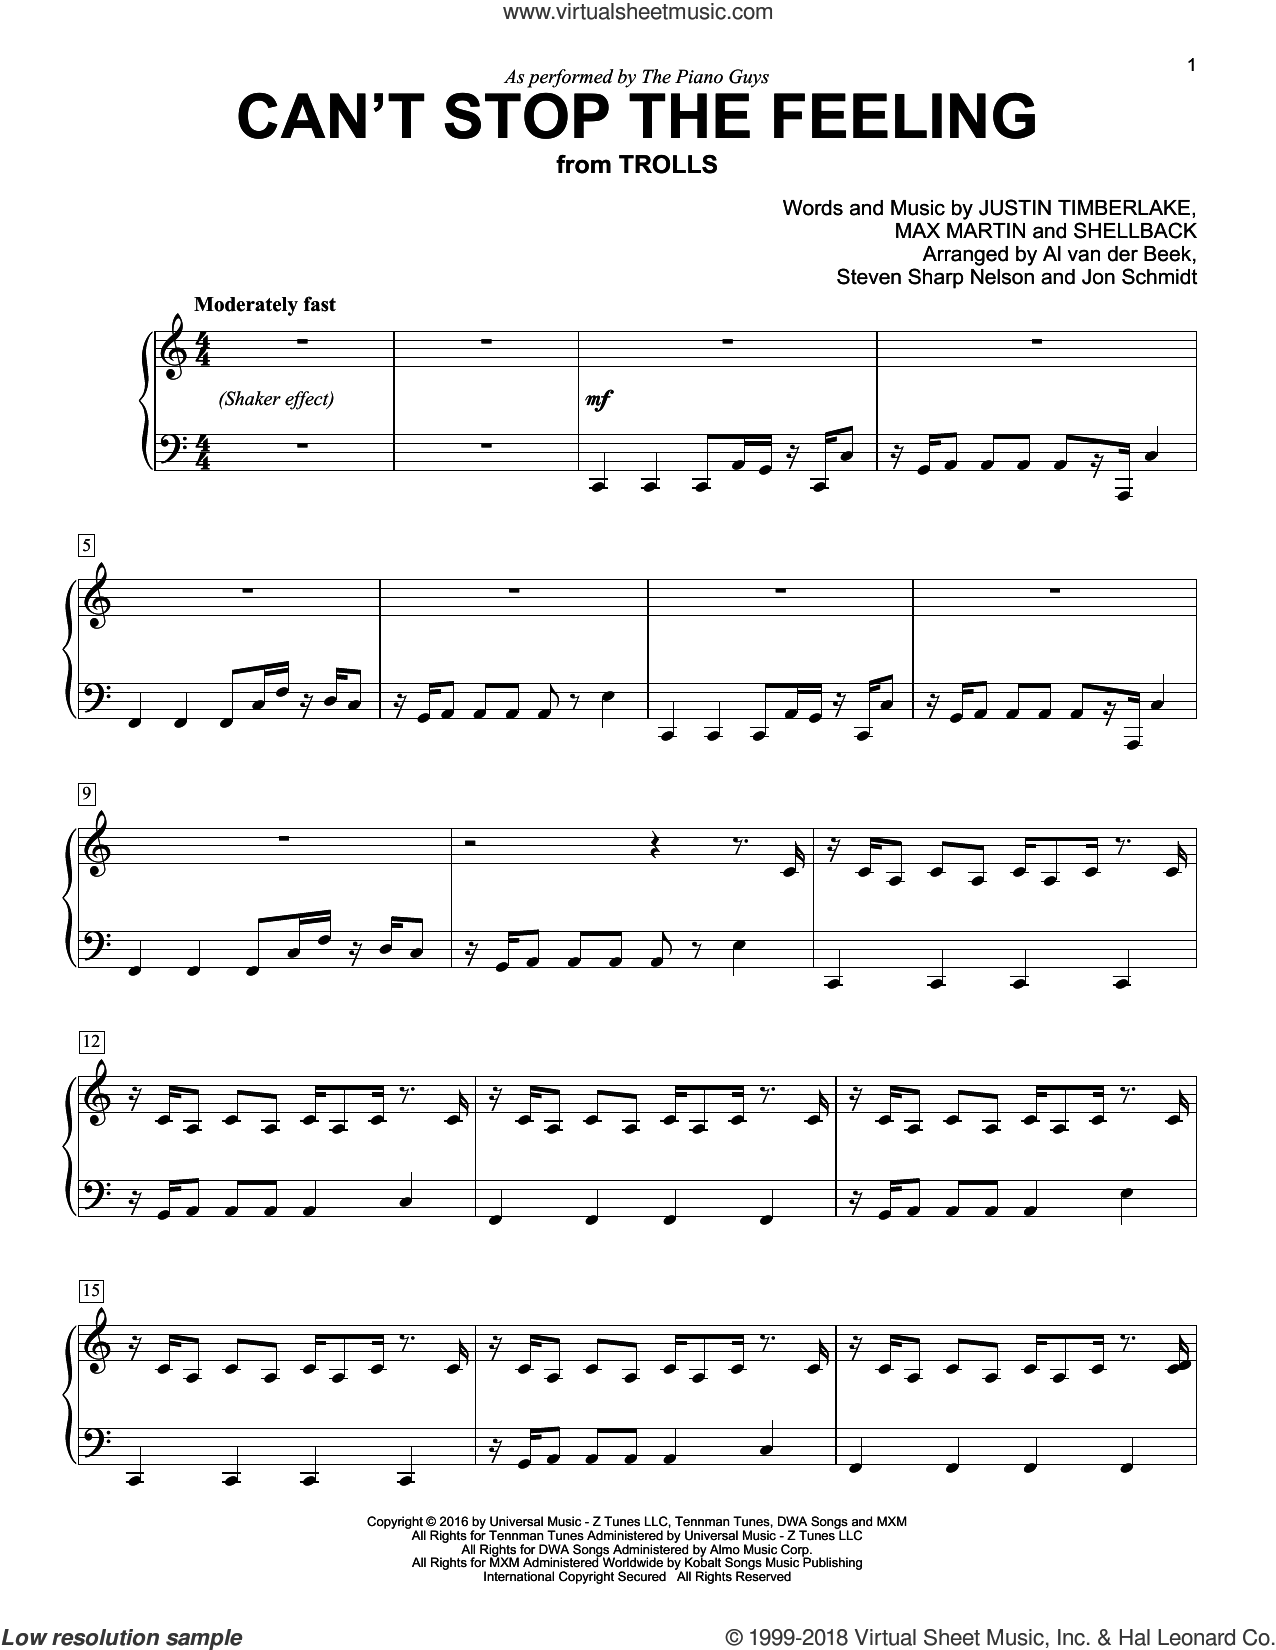 Can't Stop The Feeling sheet music for voice and piano by Shellback, The Piano Guys, Johan Schuster, Justin Timberlake and Max Martin. Score Image Preview.